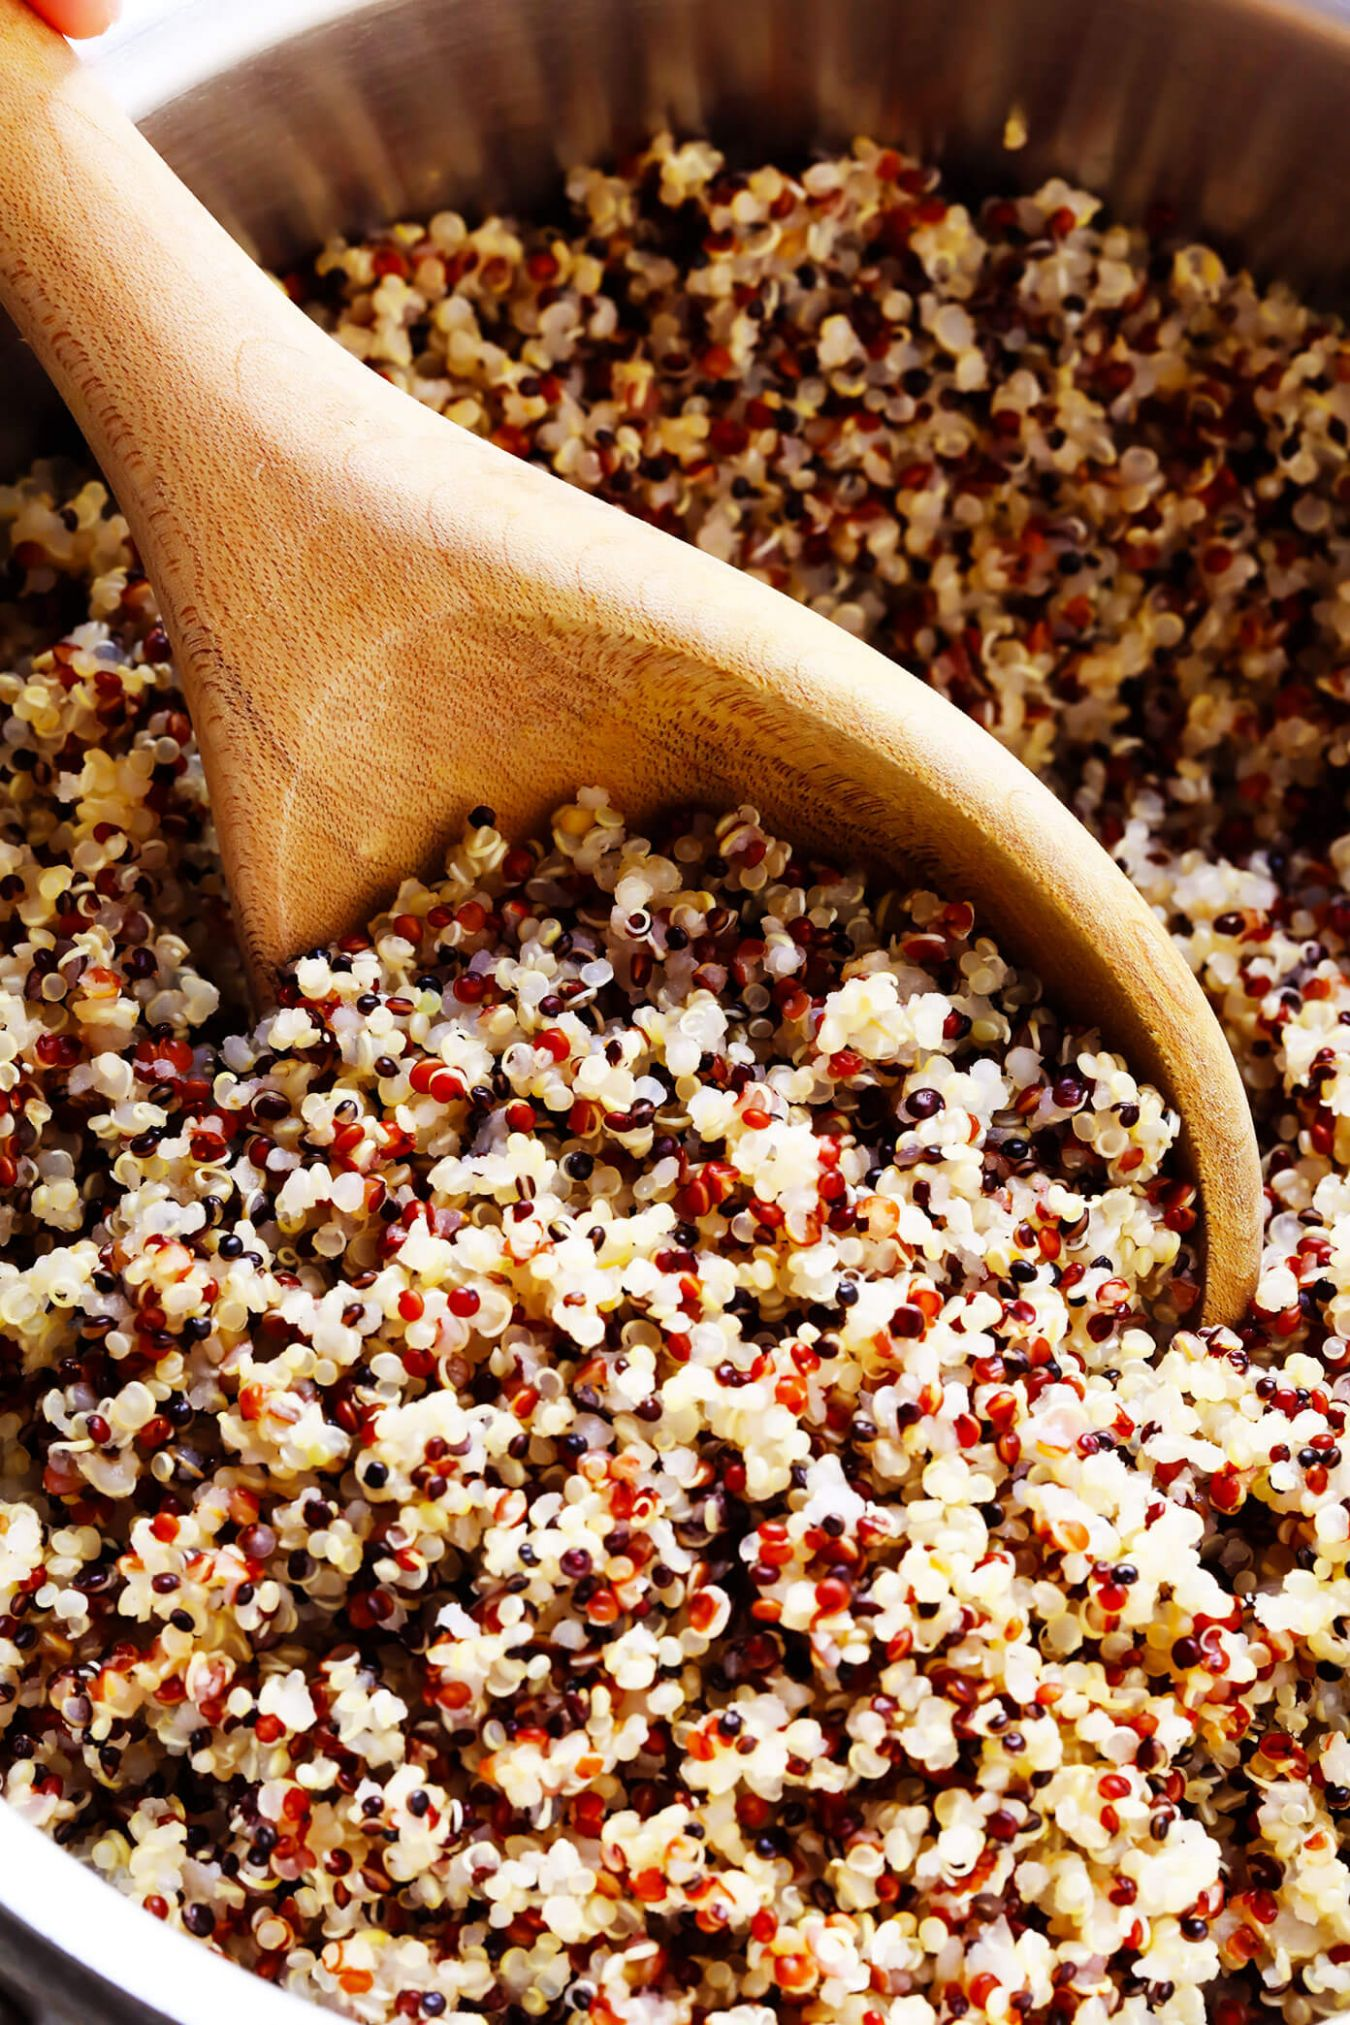 How To Cook Quinoa - Recipes For Cooking Quinoa